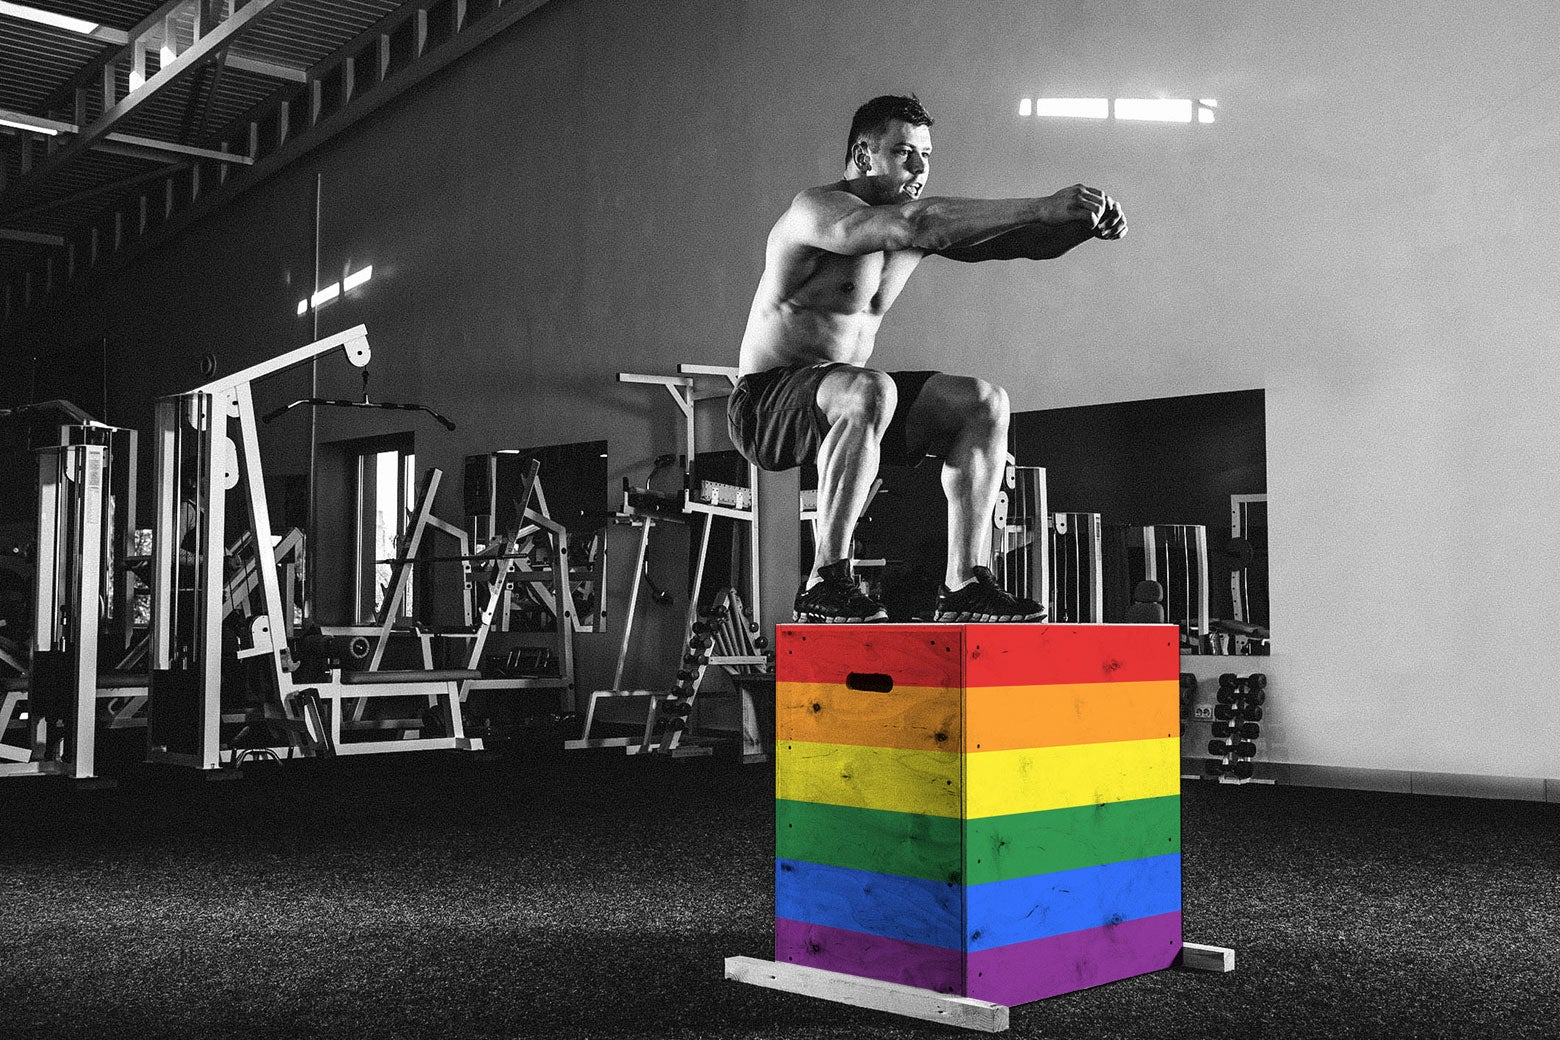 Photo illustration: A man does a box jump at the gym. The boxes have been edited to reflect a rainbow flag.